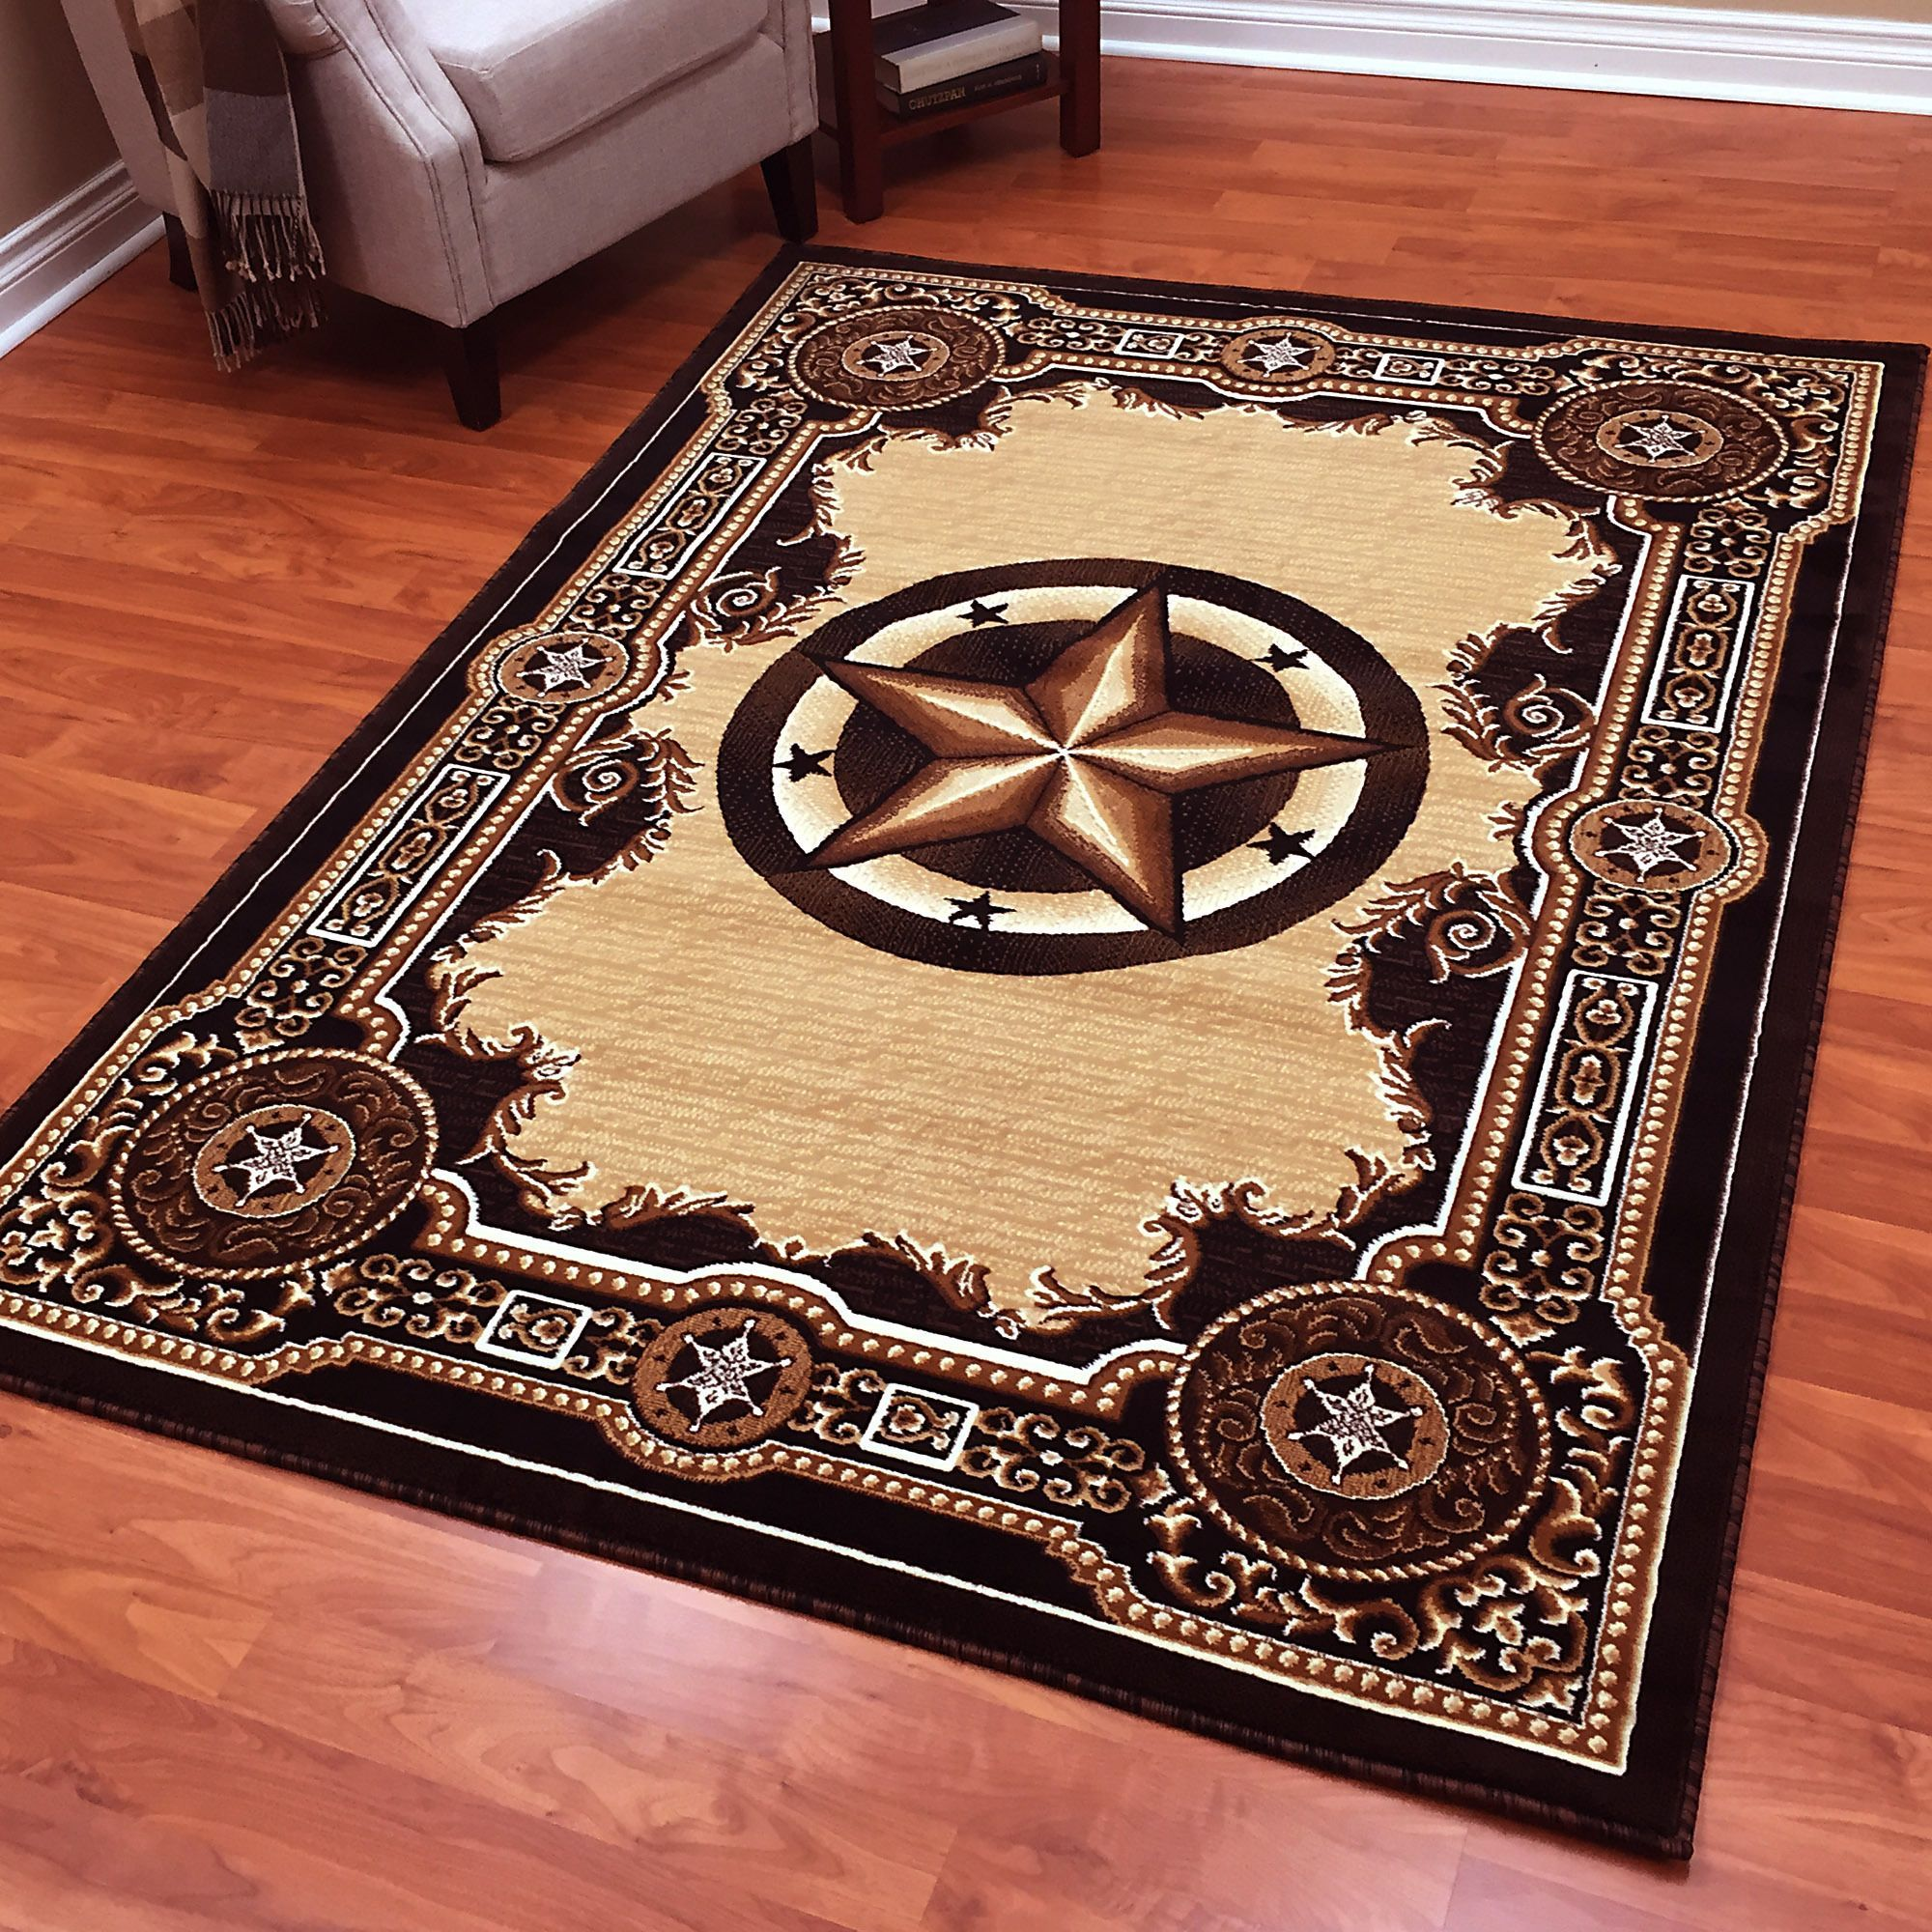 Donnieann Traditions Western Star Black Polypropylene Area Rug 5 X 7